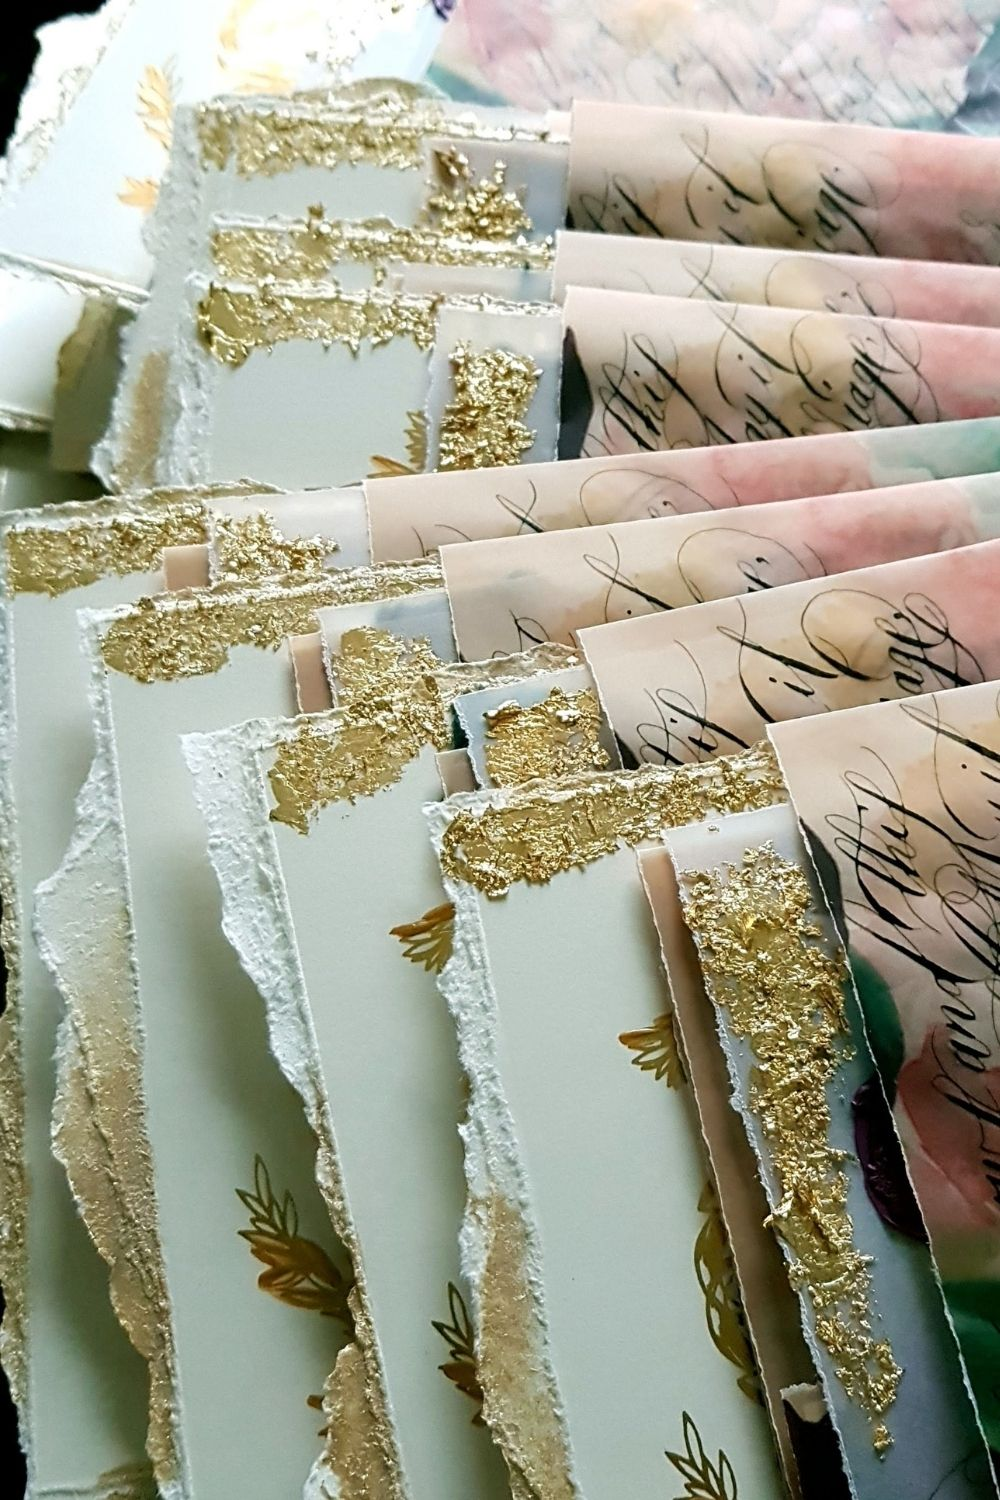 Elegant, fine art wedding stationery with refined details, hand torn edges and gold foil touches with black calligraphy vellum wraps